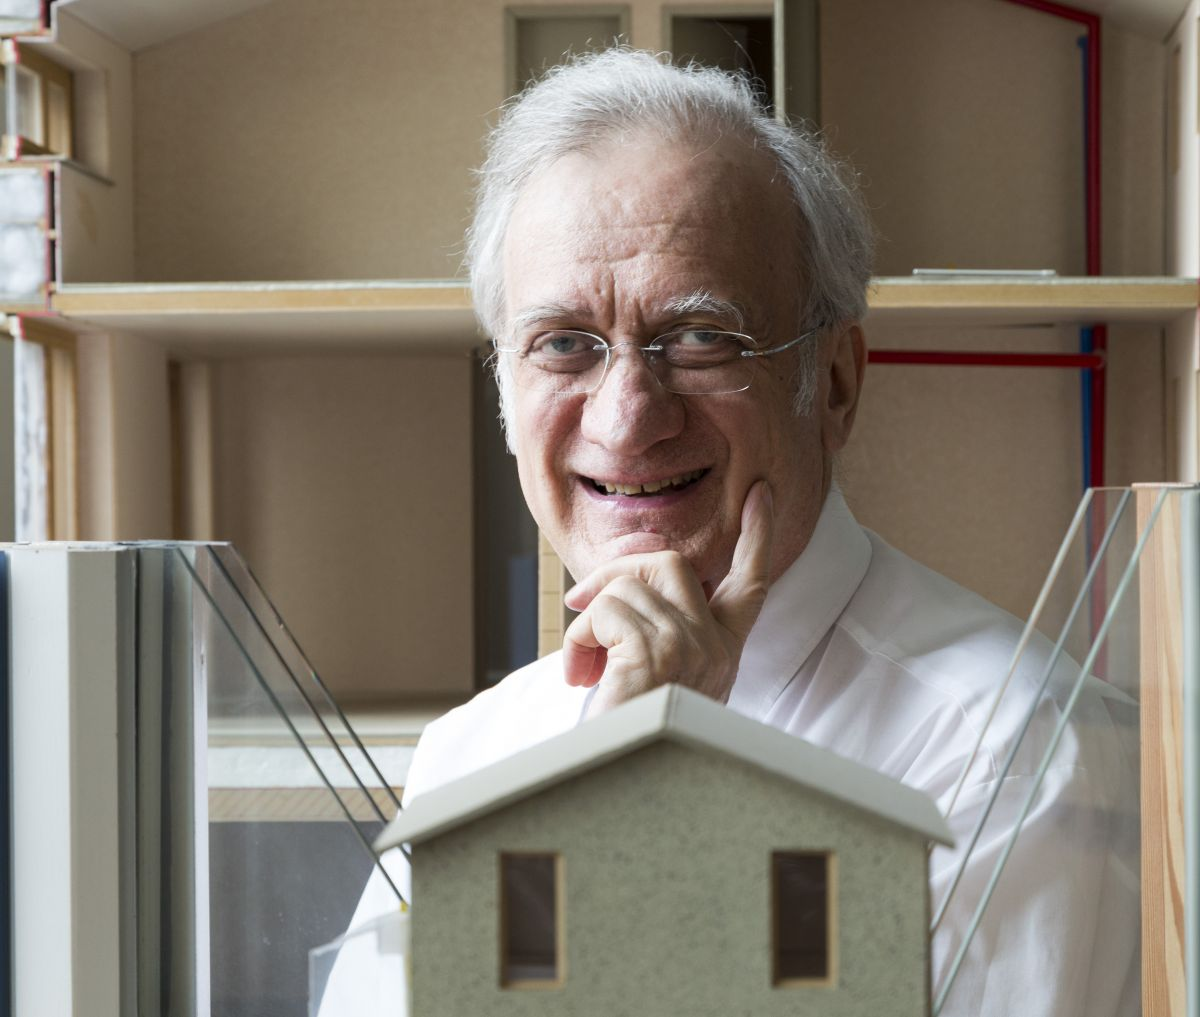 The first Passive House: Interview with Dr. Wolfgang Feist (part1)